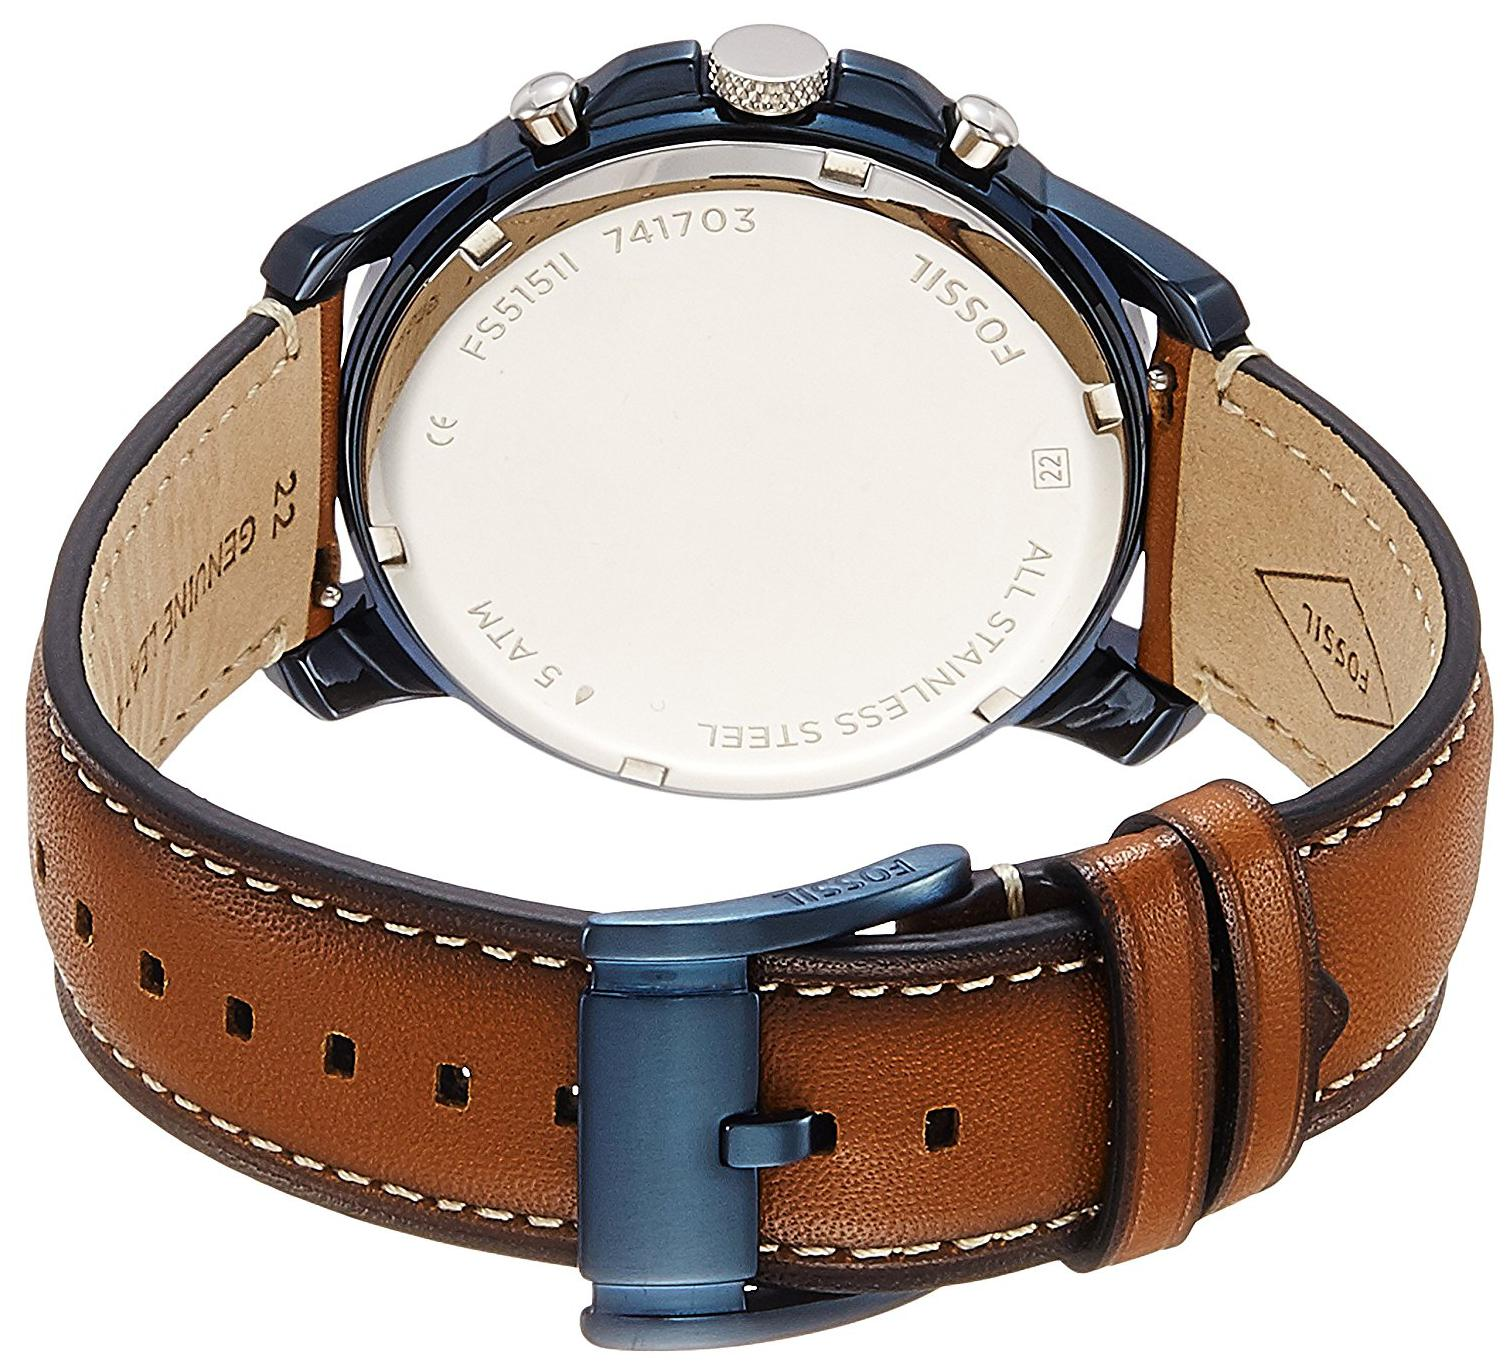 c5d5d12c13b8 Buy Fossil Grant Chronograph Brown Men s Watch - FS5151 Online at Low  Prices in India - Paytmmall.com